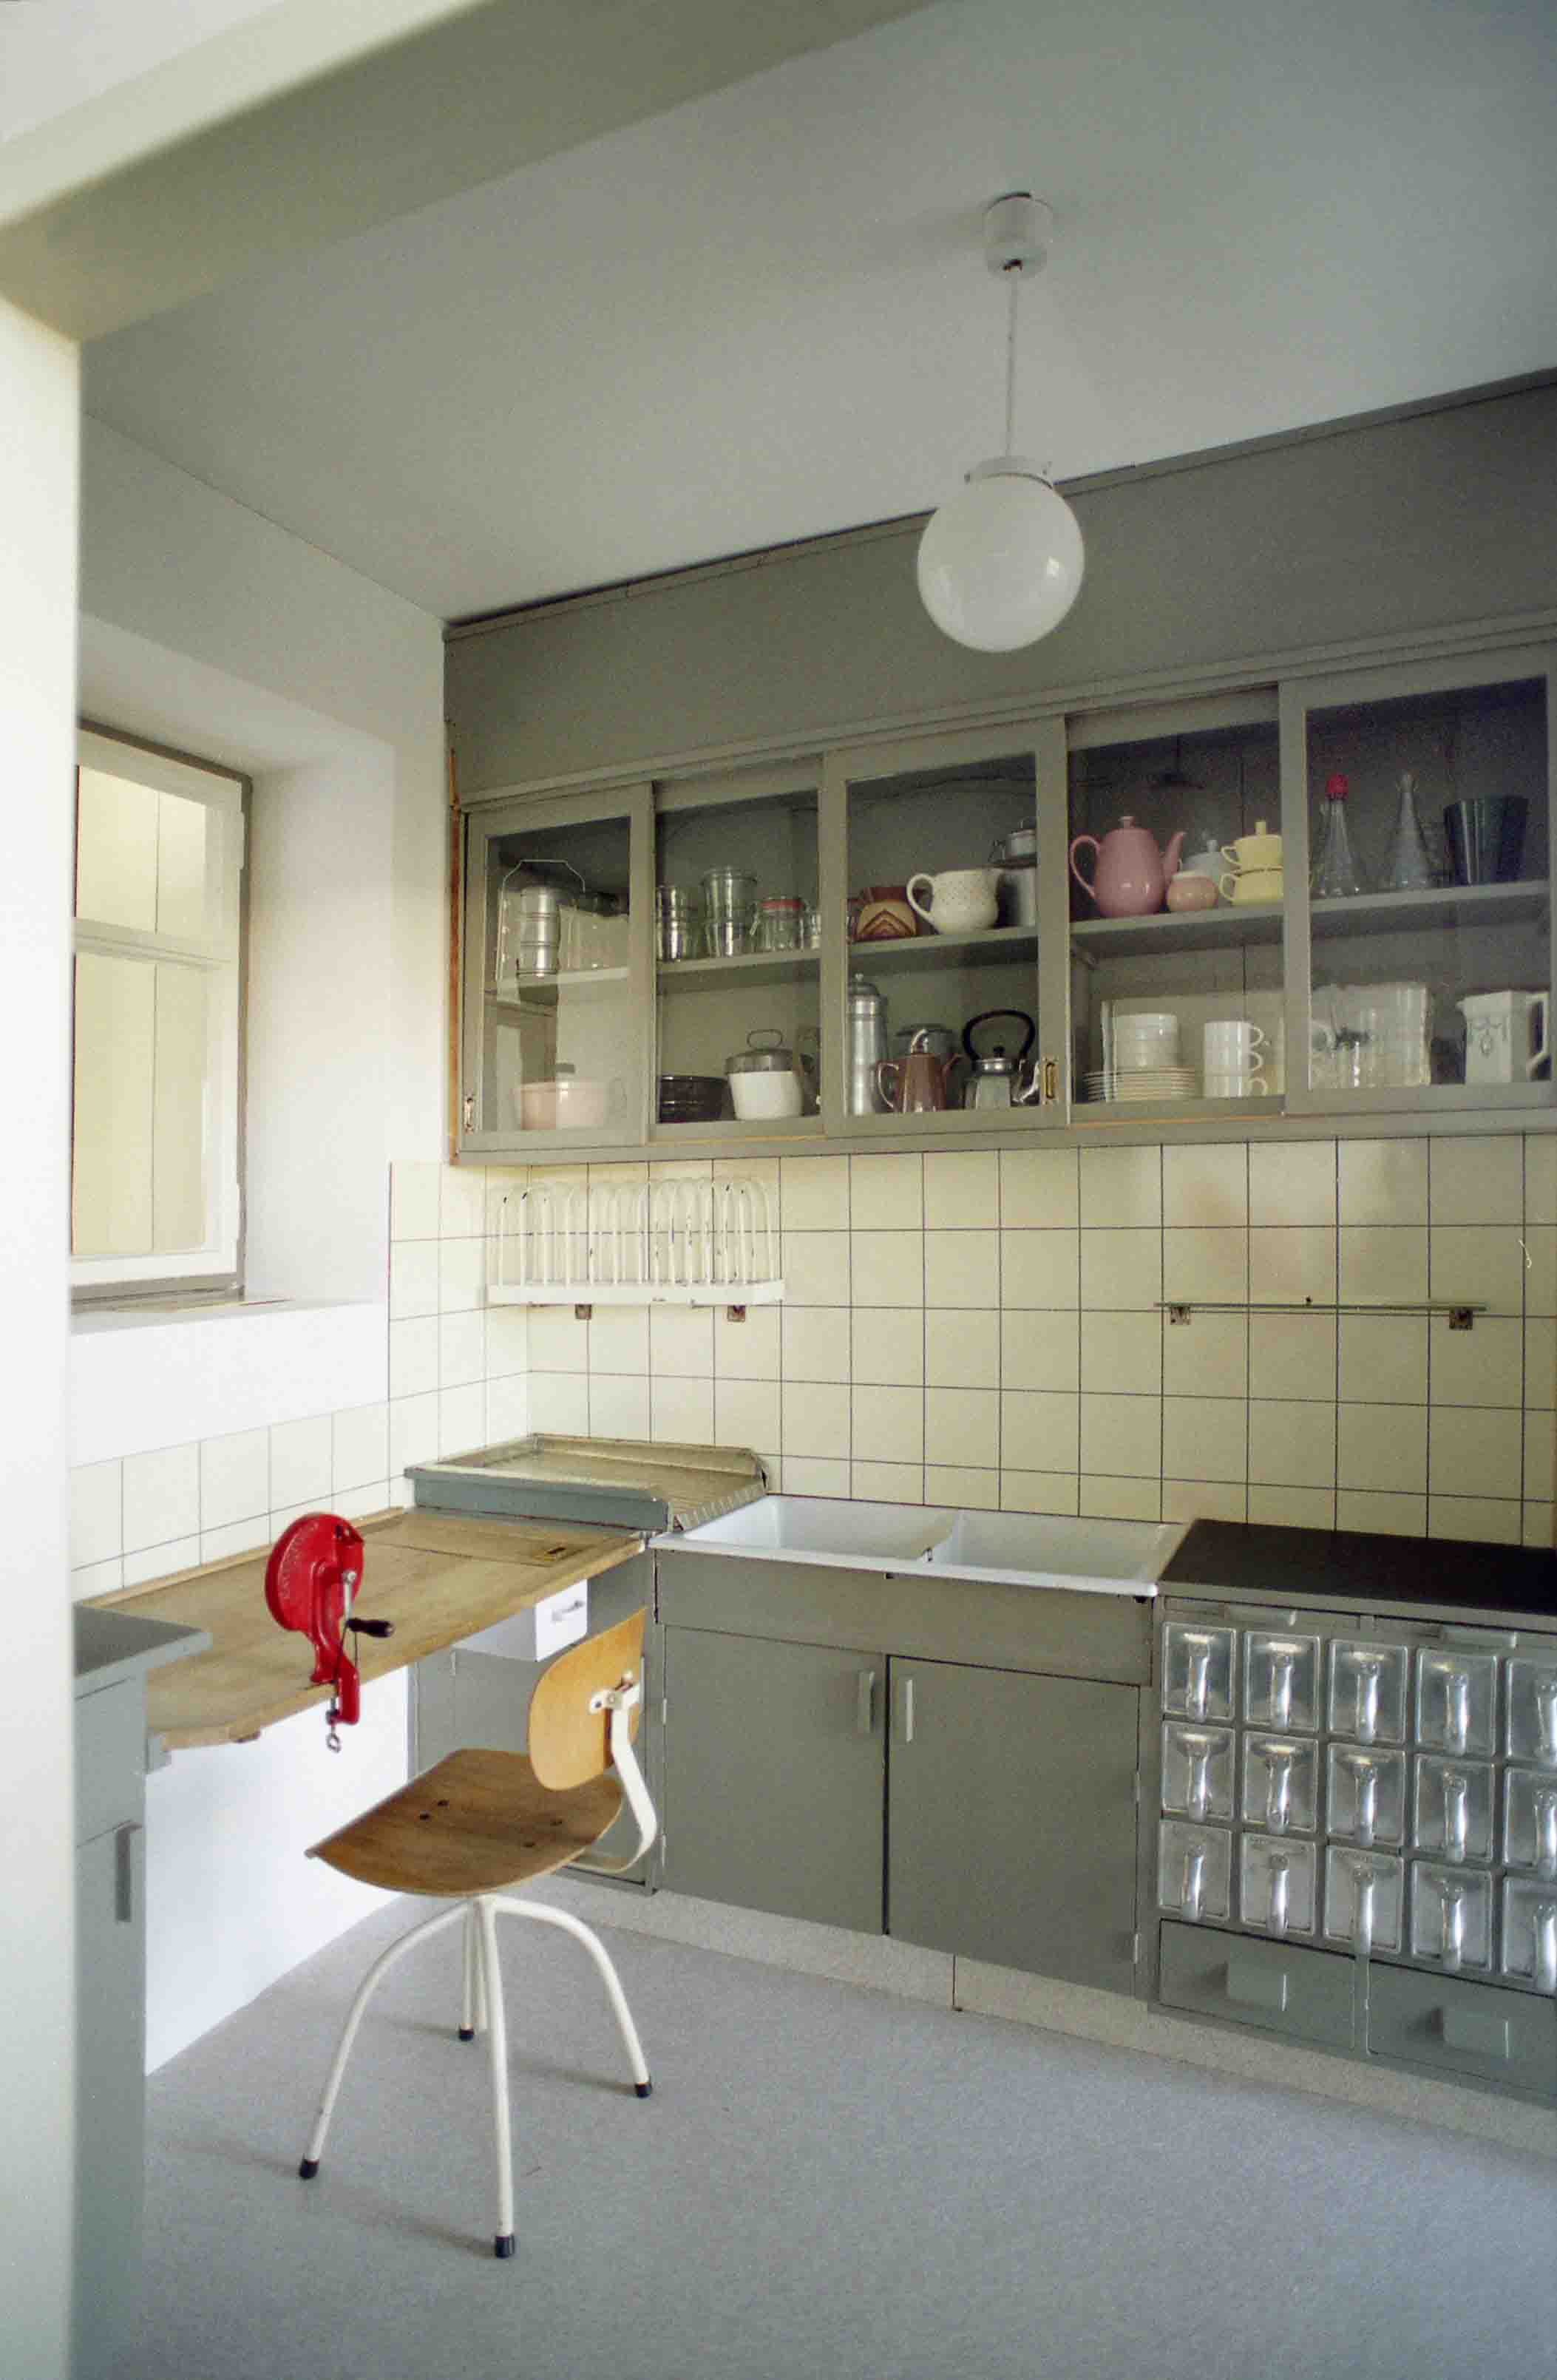 Frankfurter Küche Museum Frankfurt Everything But The Kitchen Sink Seeing Things